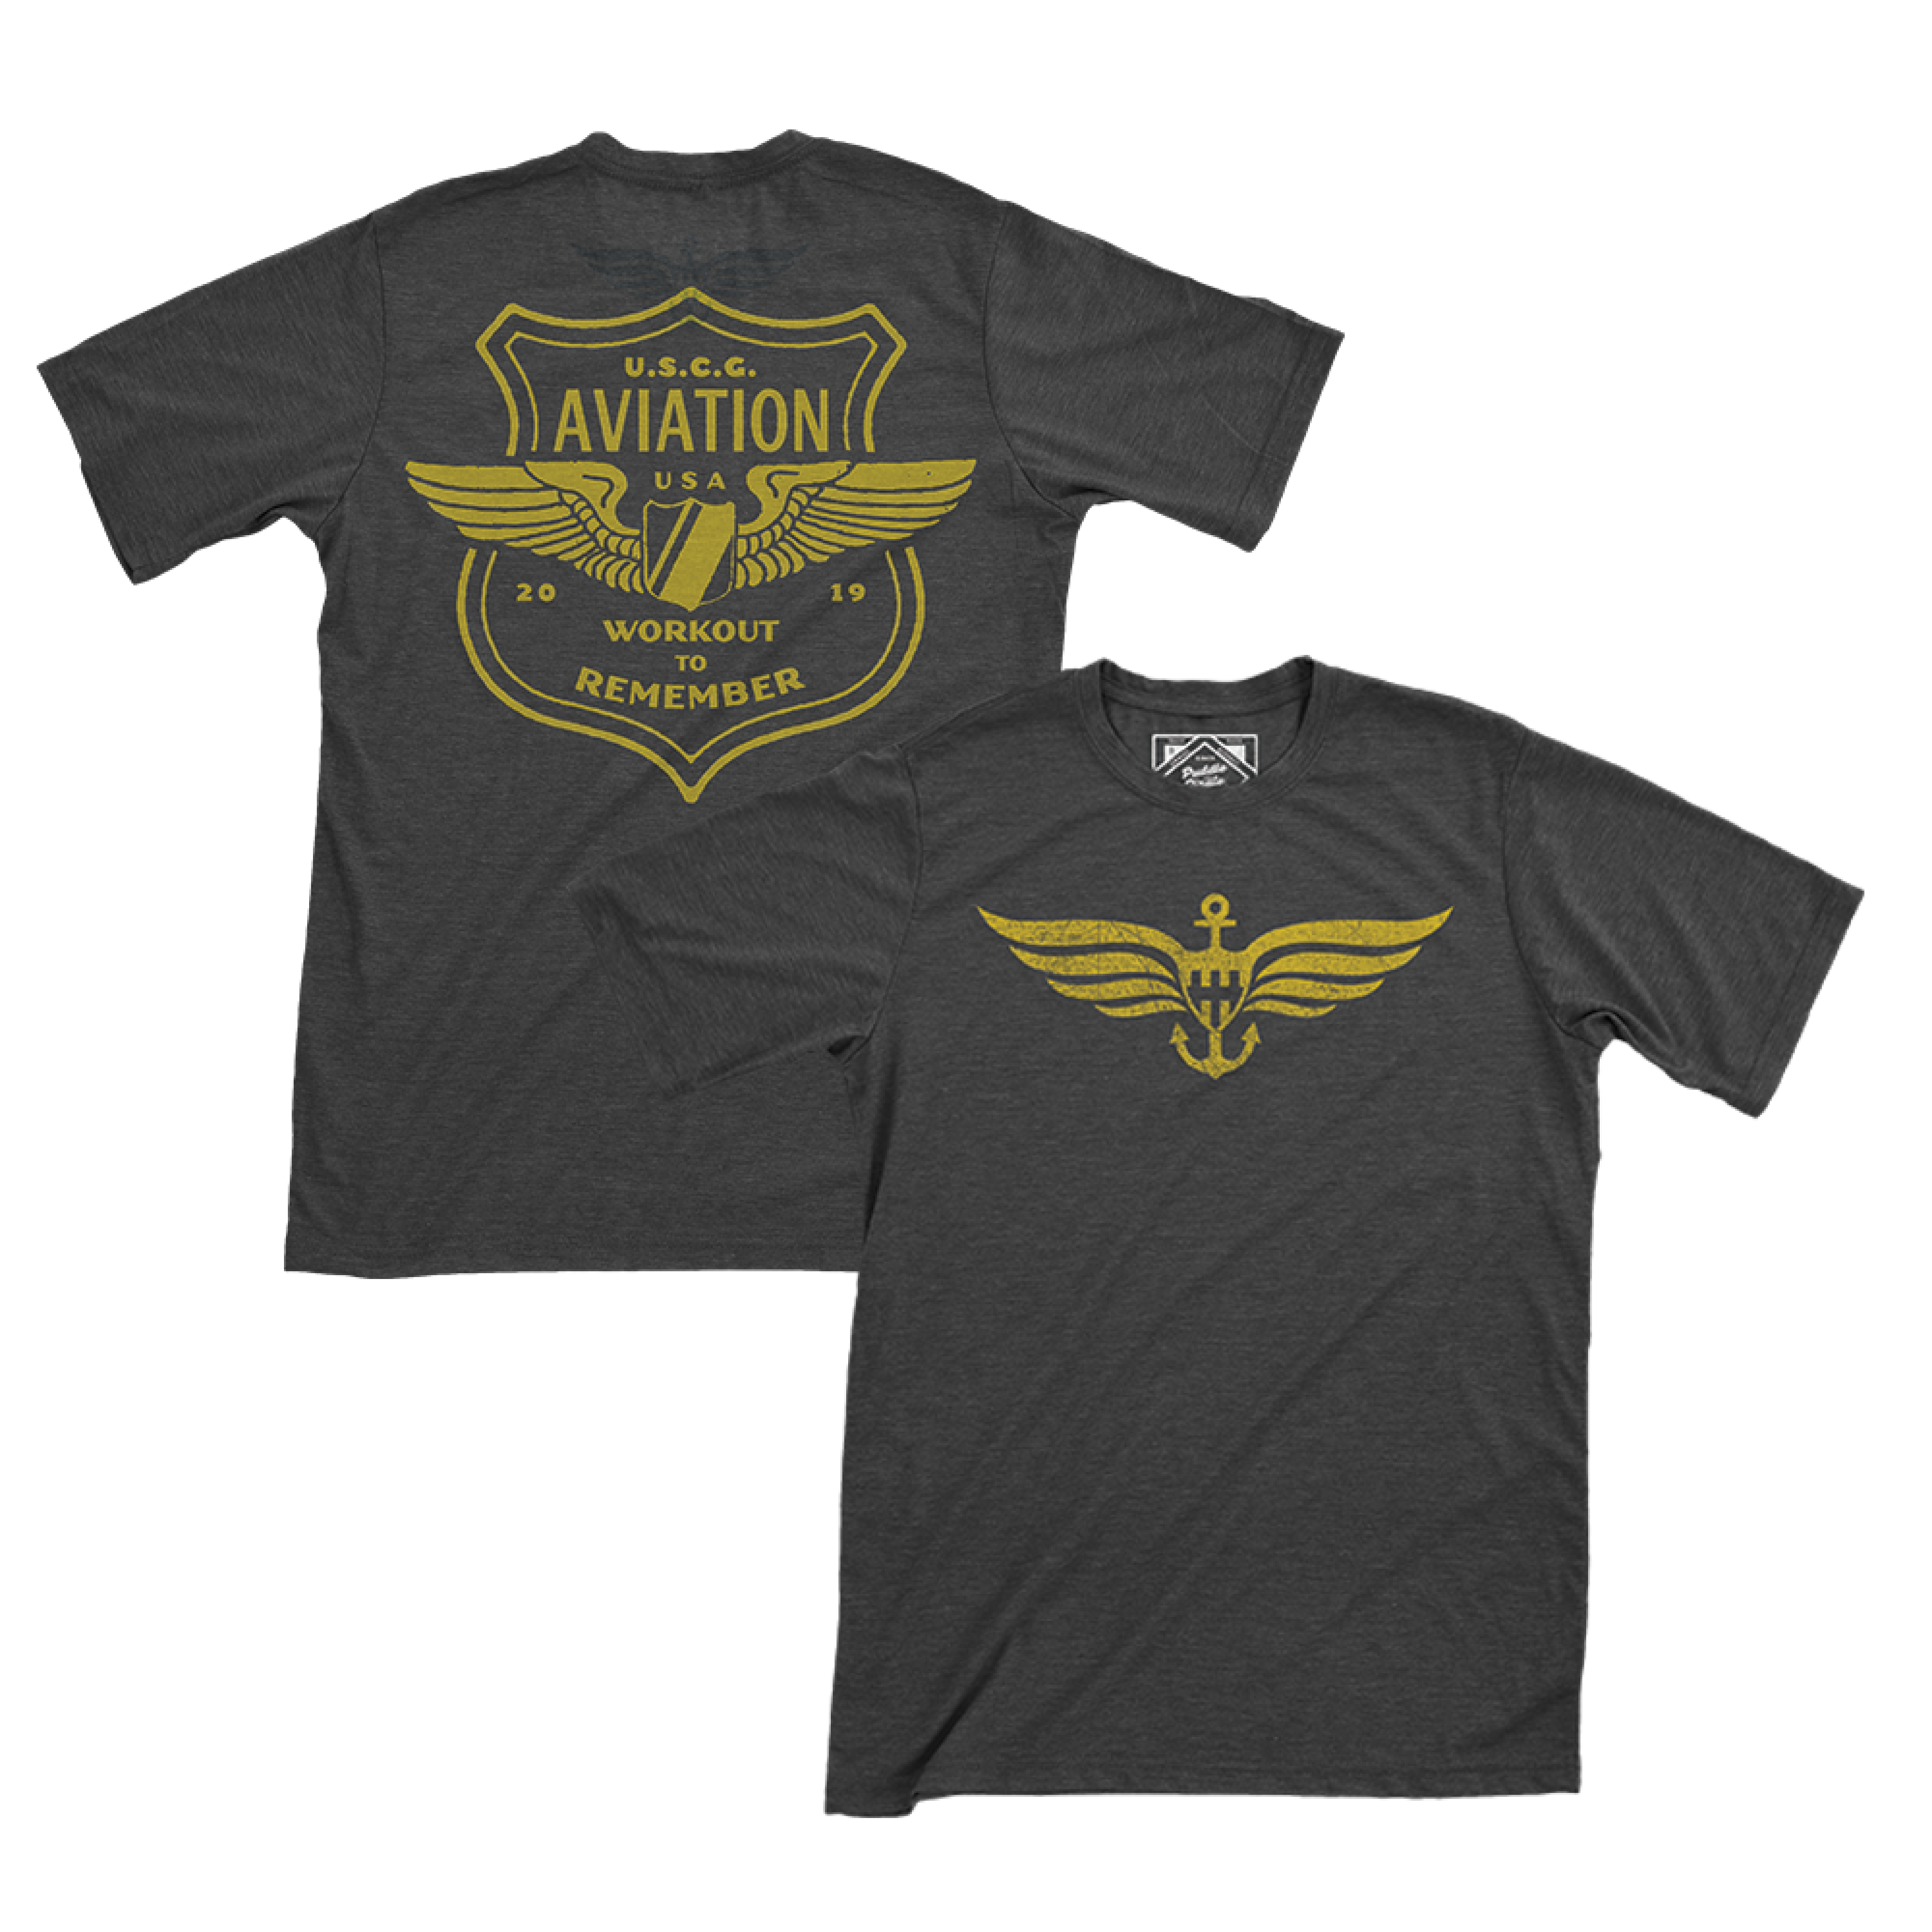 19 Puddle Pirate Aviation Shirt 2019